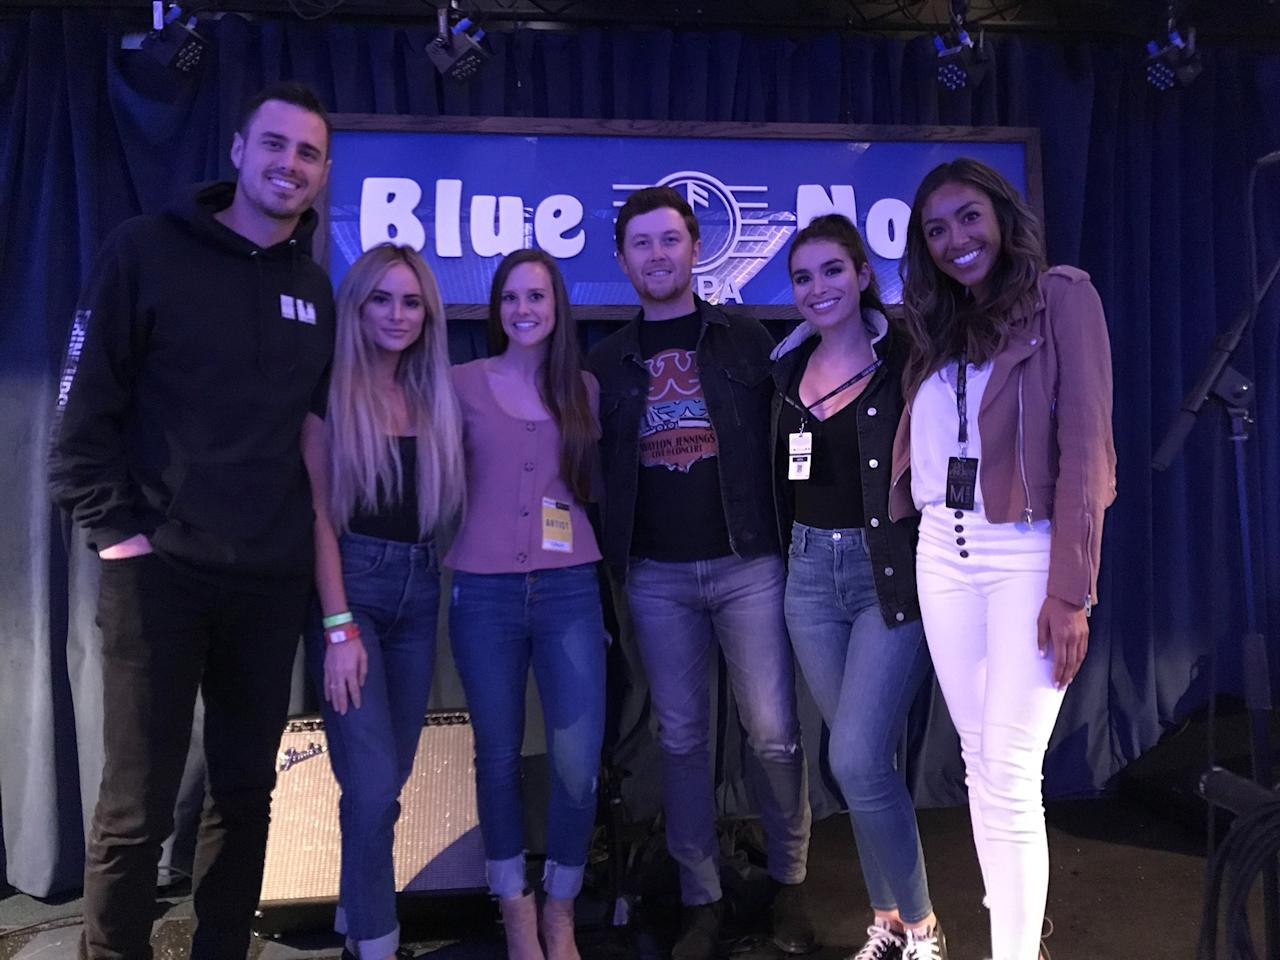 "<em>Bachelor</em> <a href=""https://people.com/tag/ben-higgins/"">Ben Higgins</a> poses with show alum <a href=""https://people.com/tag/amanda-stanton/"">Amanda Stanton</a>, <a href=""https://people.com/tag/american-idol/""><em>American Idol</em></a> winner <a href=""https://people.com/tag/scotty-mccreery/"">Scotty McCreery</a> and his wife Gabi and fellow <em>Bachelor</em> ladies <a href=""https://people.com/tag/Ashley-Iaconetti/"">Ashley Iaconetti</a> and Tayshia Adams at Blue Note at the JaM Cellars Ballroom."